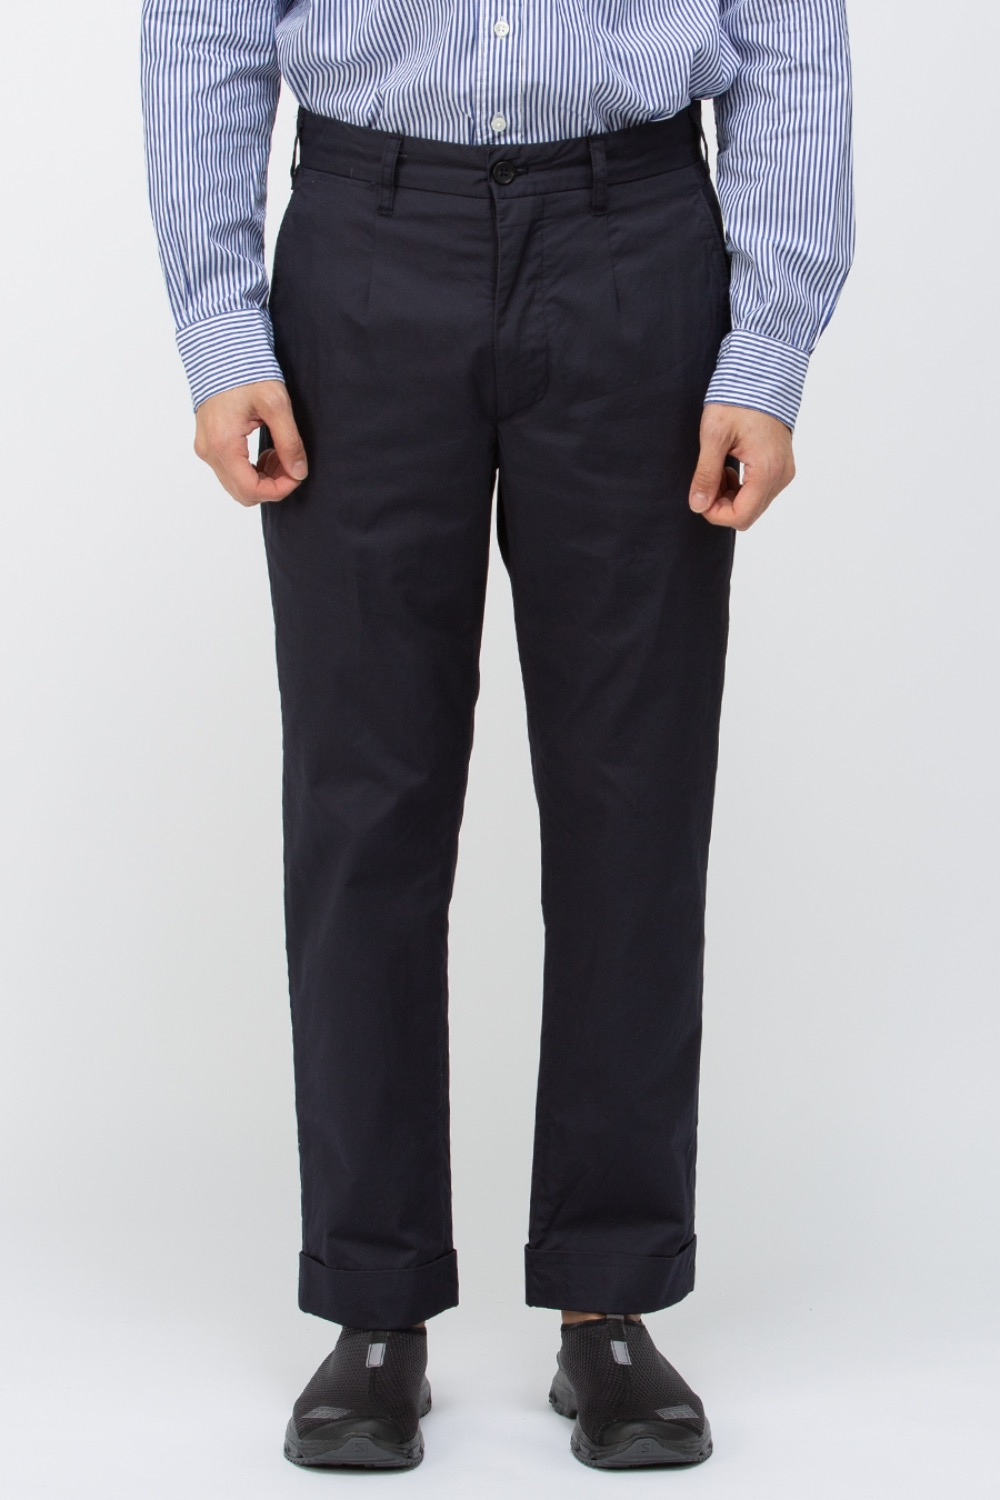 ANDOVER PANT HIGHCOUNT TWILL DARK NAVY